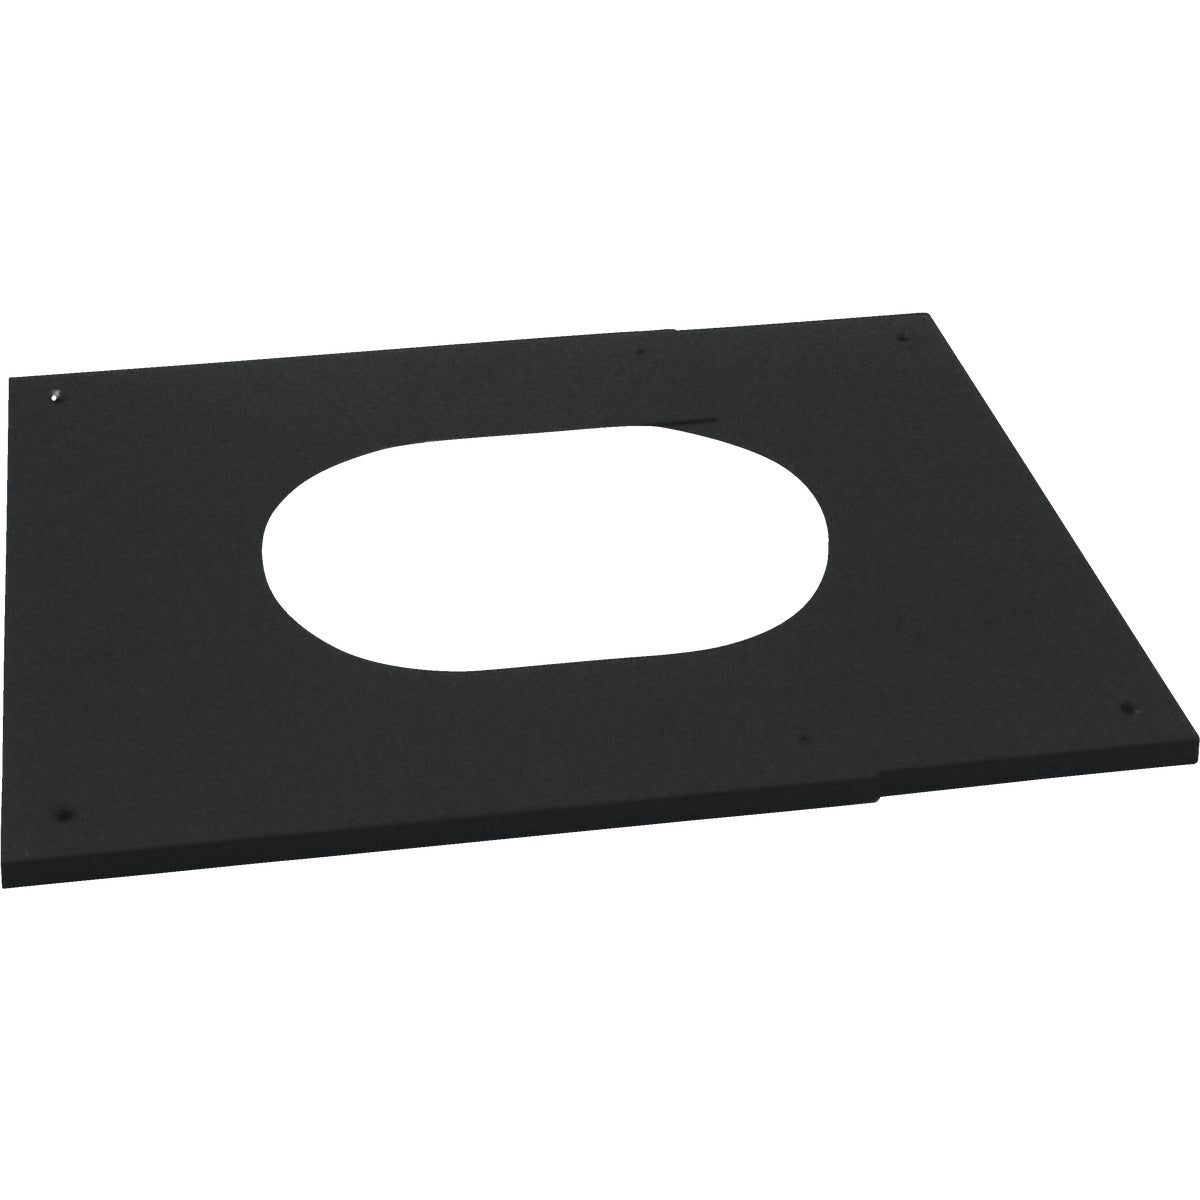 """8"""" ADJUST CEILING PLATE - 208512 by Selkirk Corporation"""